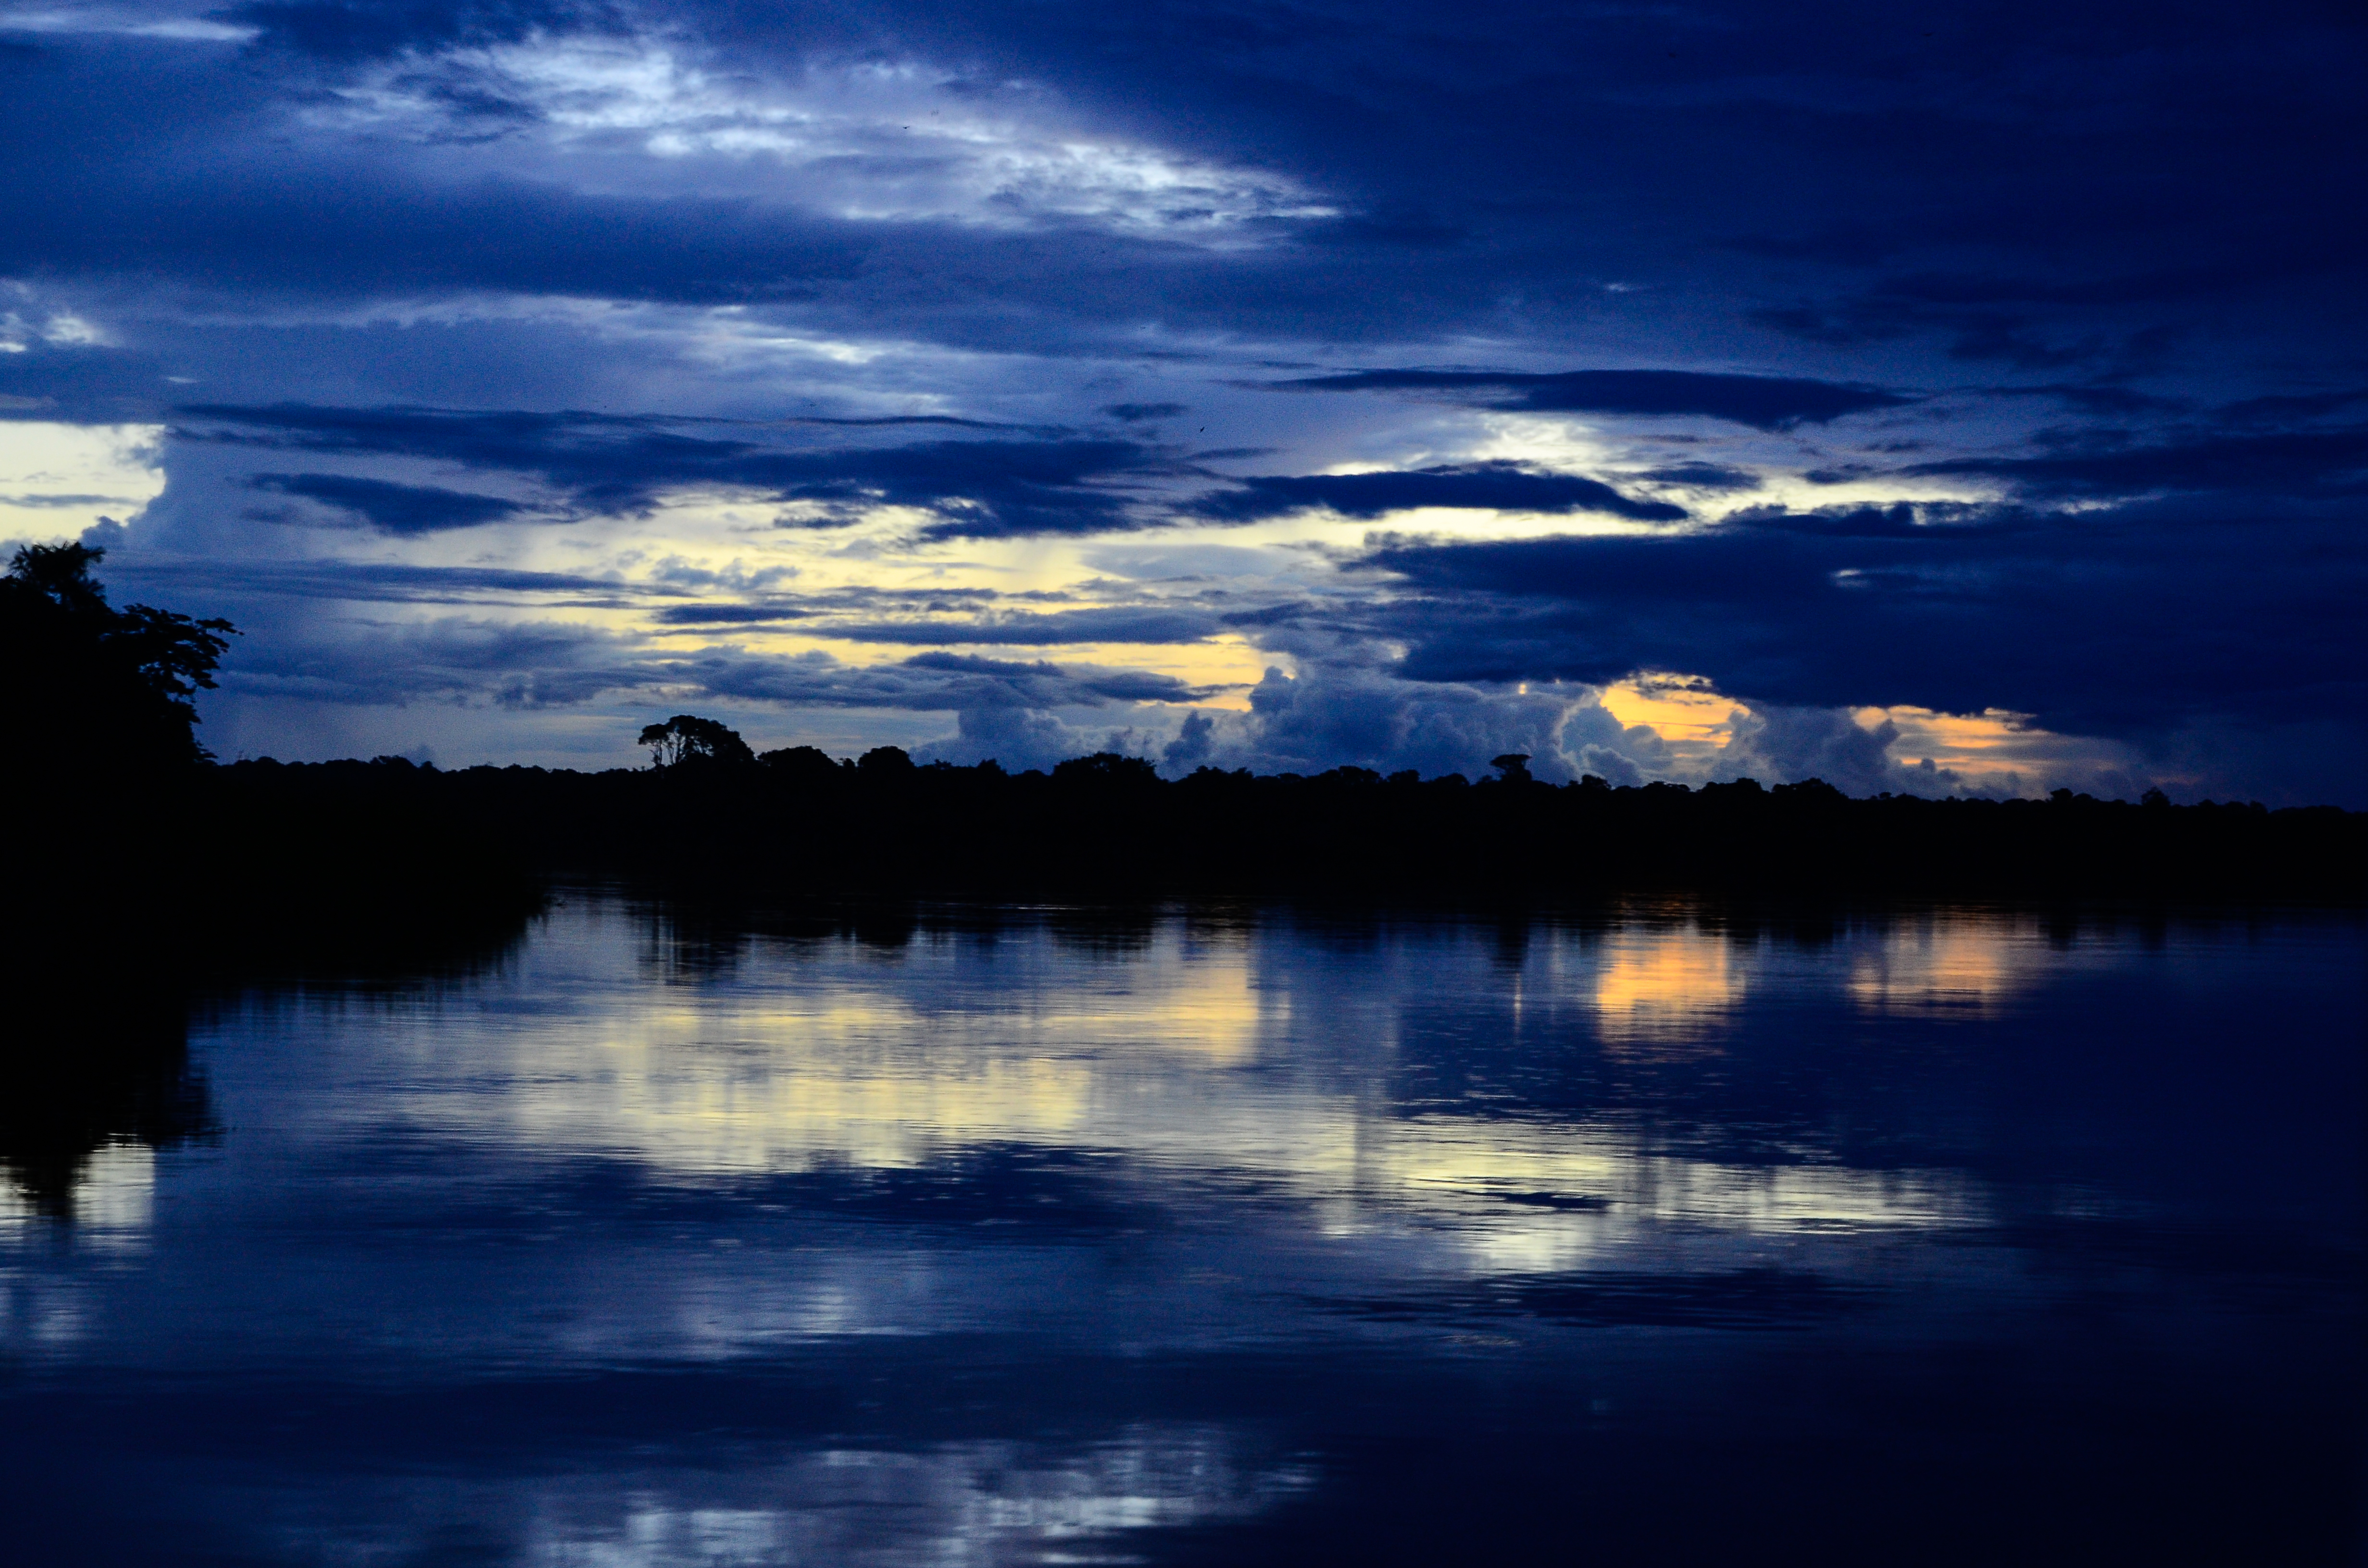 Sunset over the Amazon River.